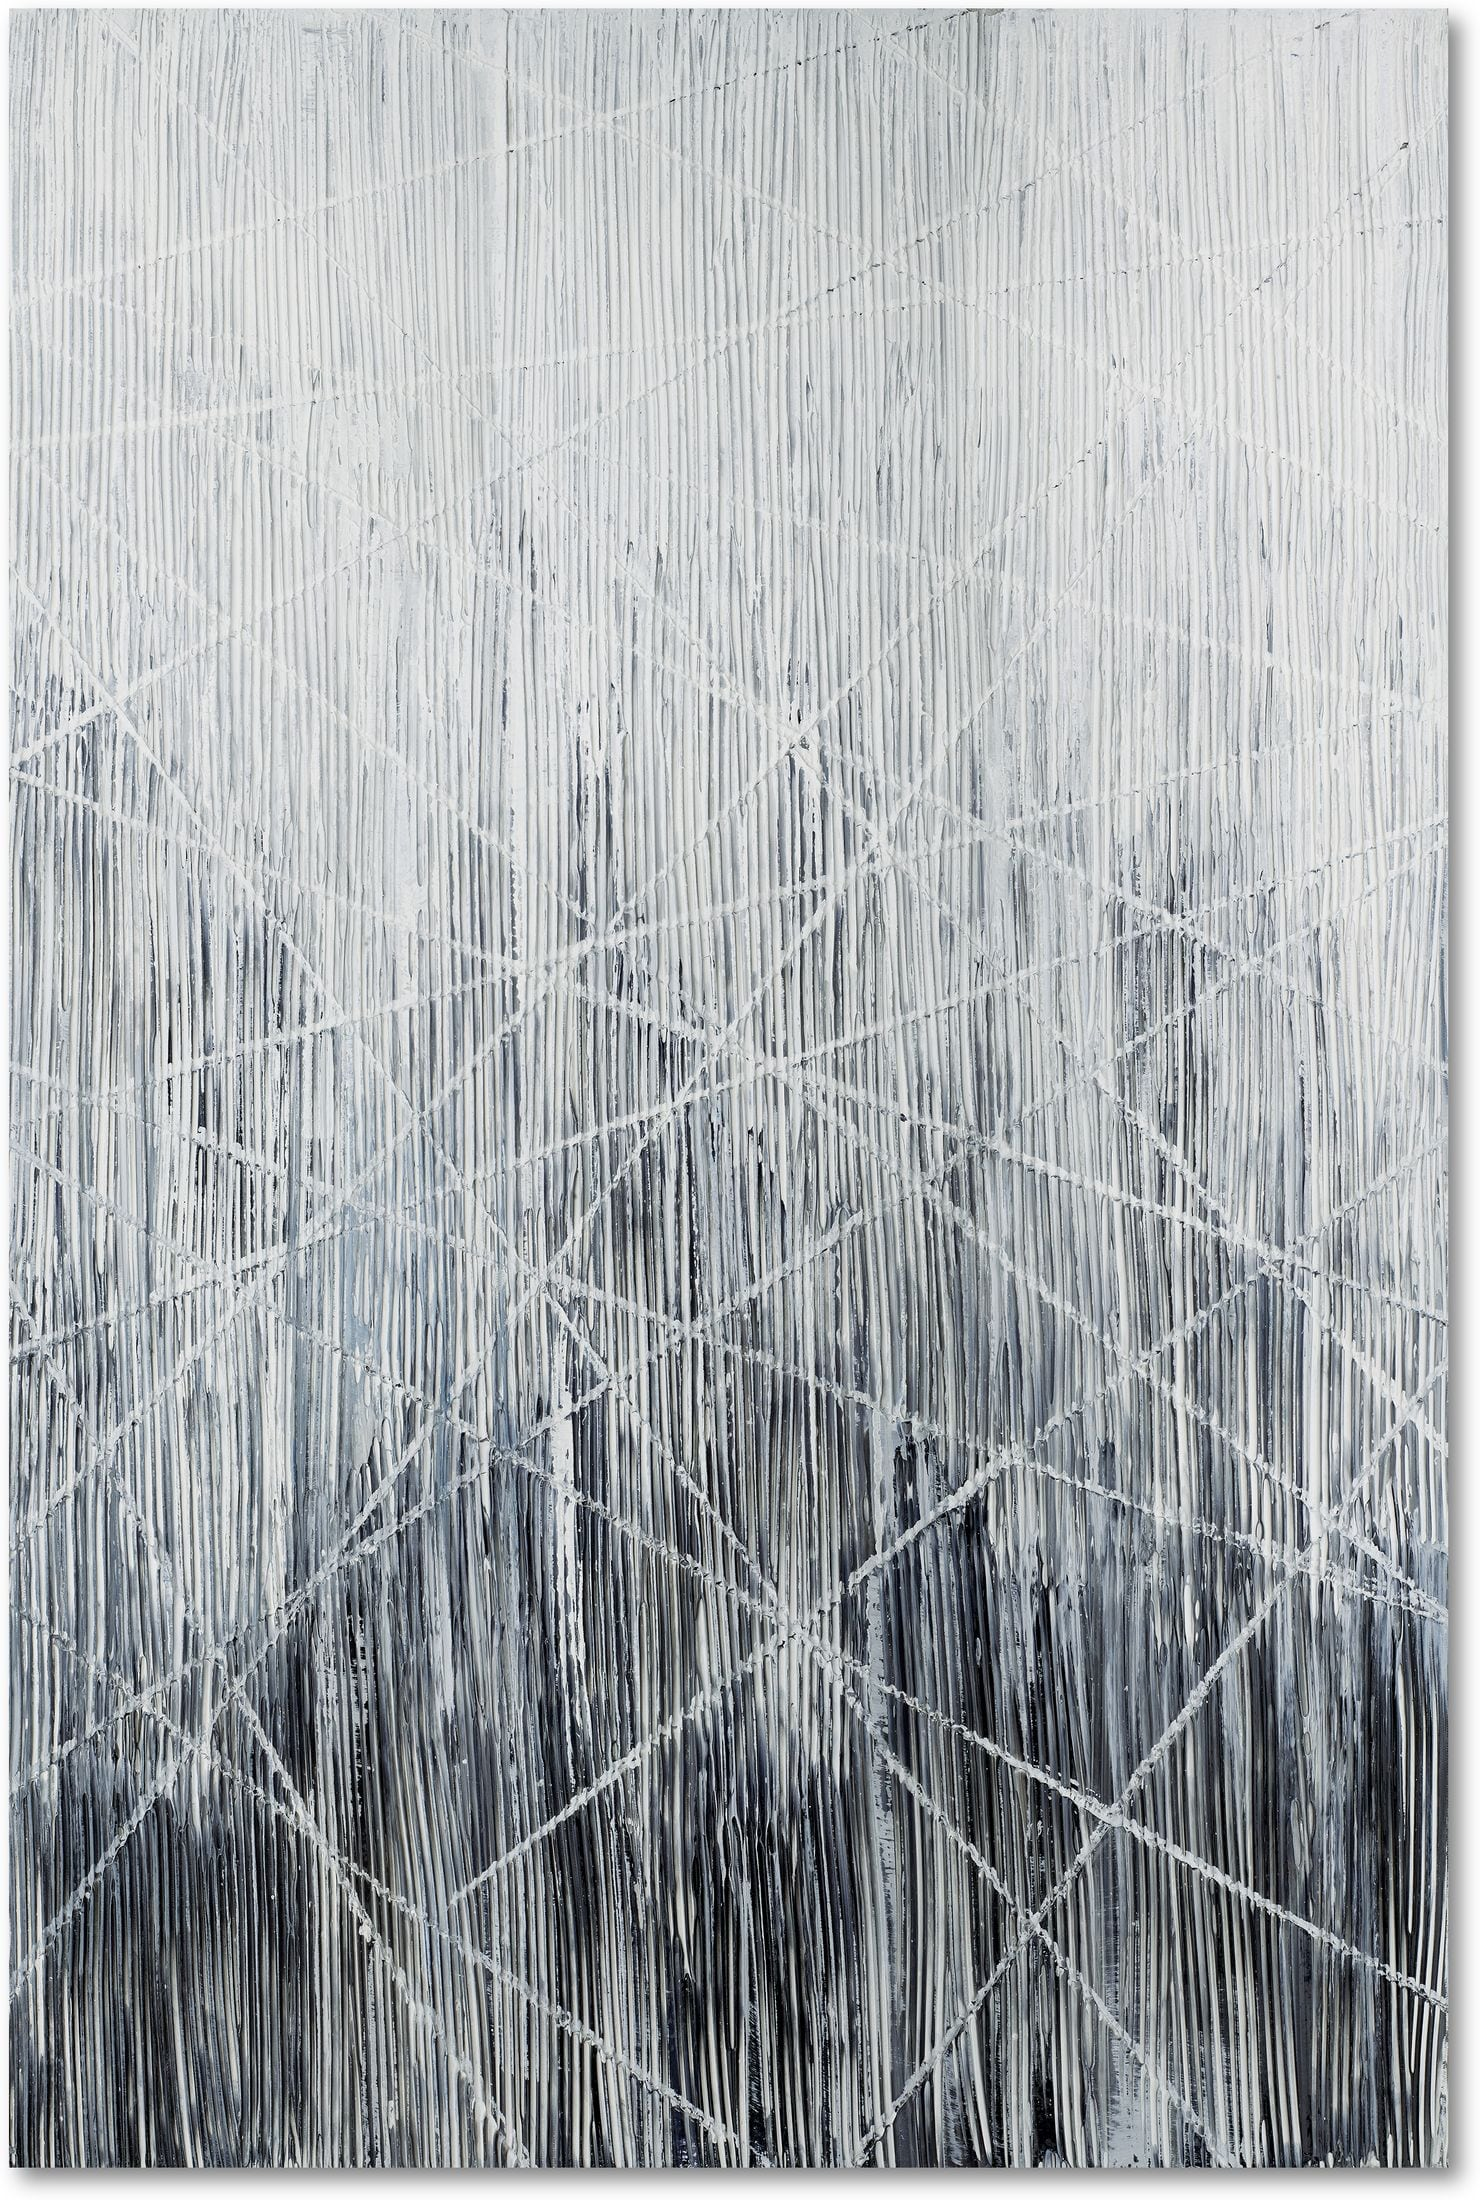 Home Accessories - Gray Web Wall Art